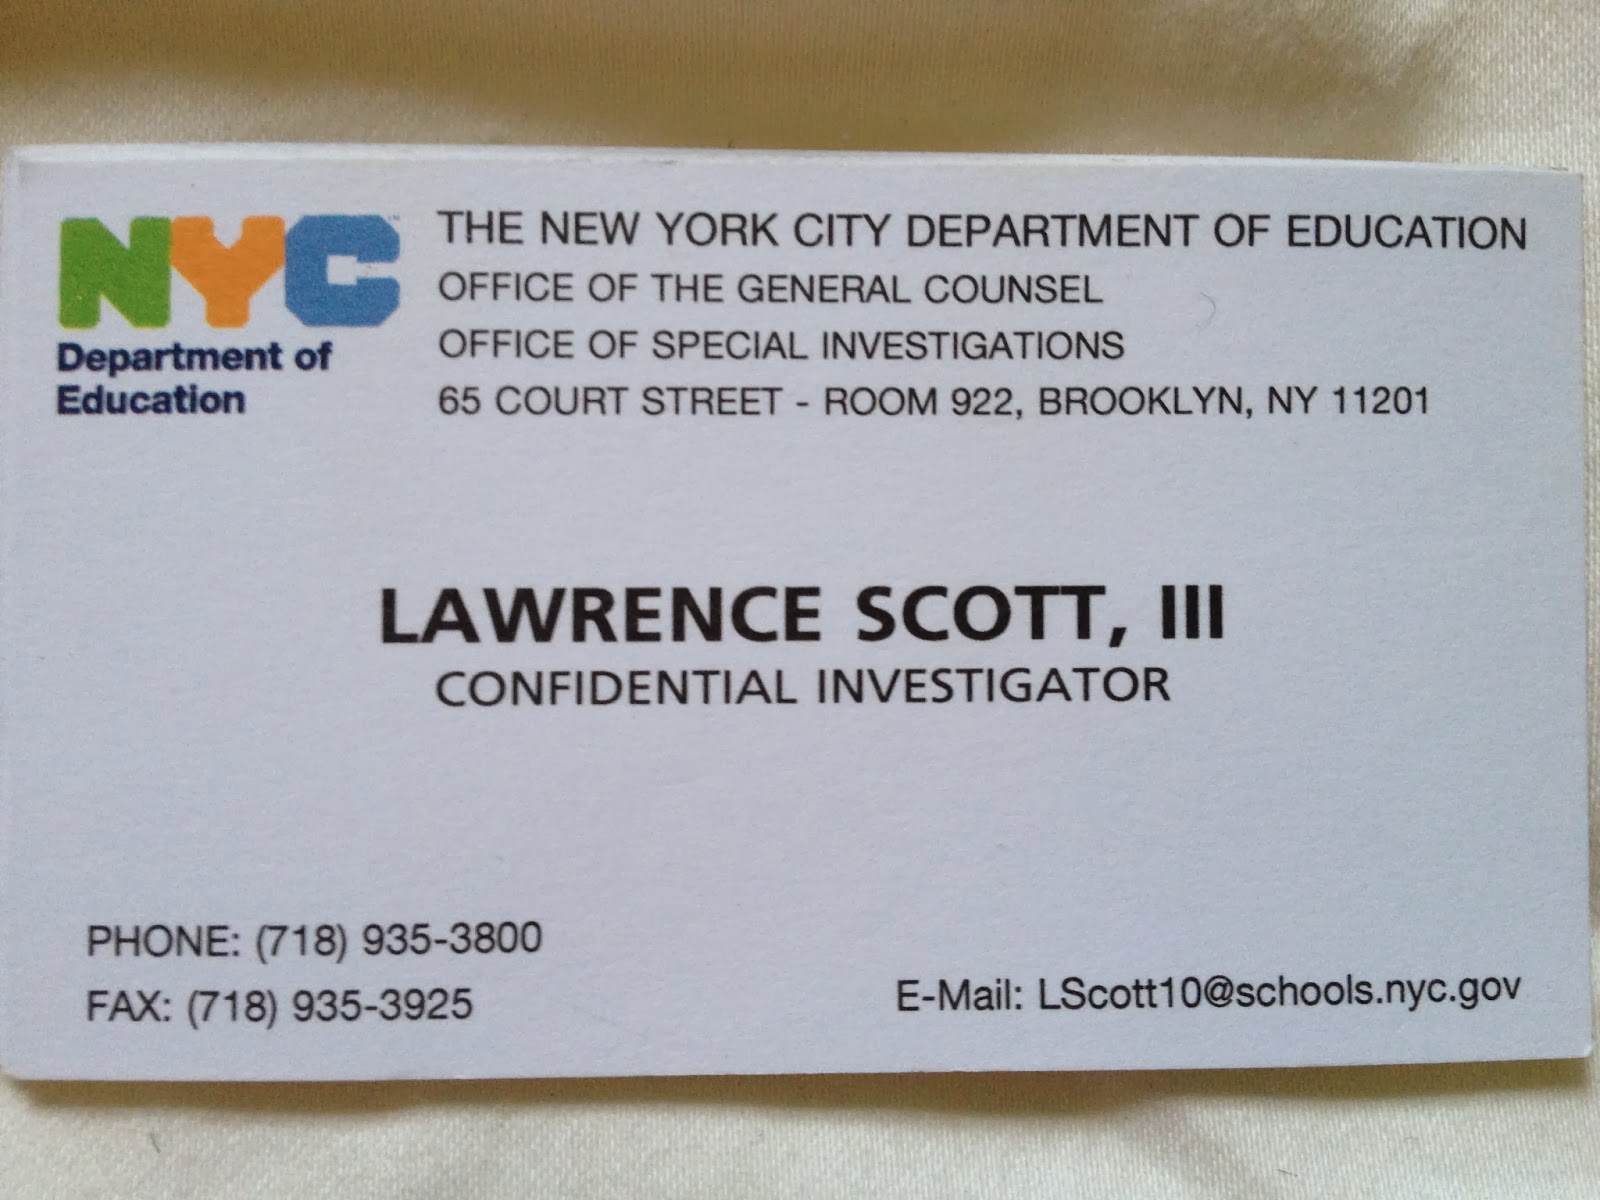 Business Cards Brooklyn New York Images - Card Design And Card Template